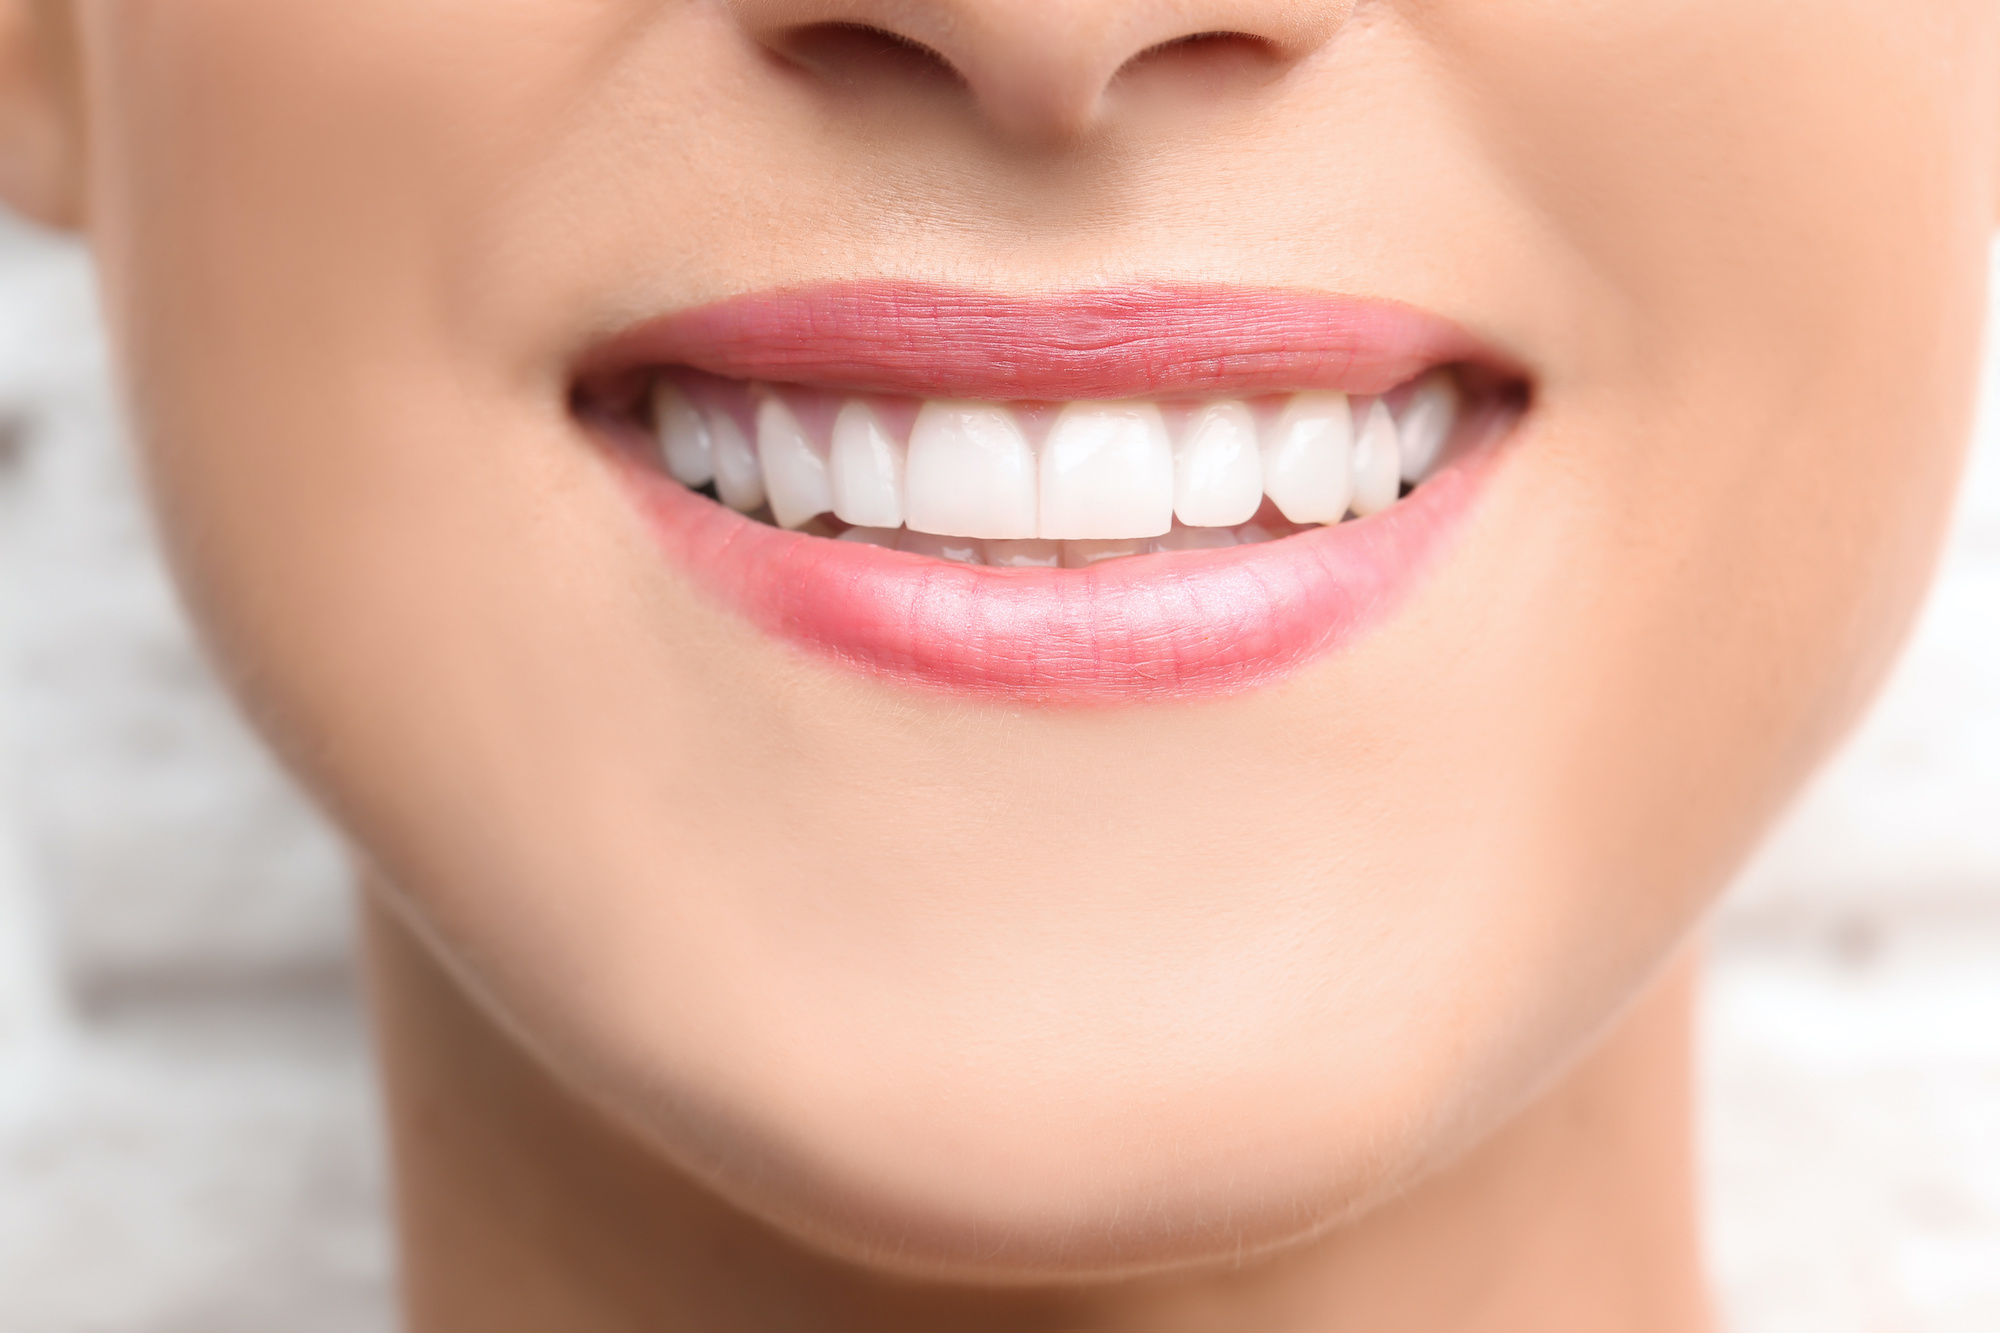 How To Care For Your Cosmetic Dentistry Treatments